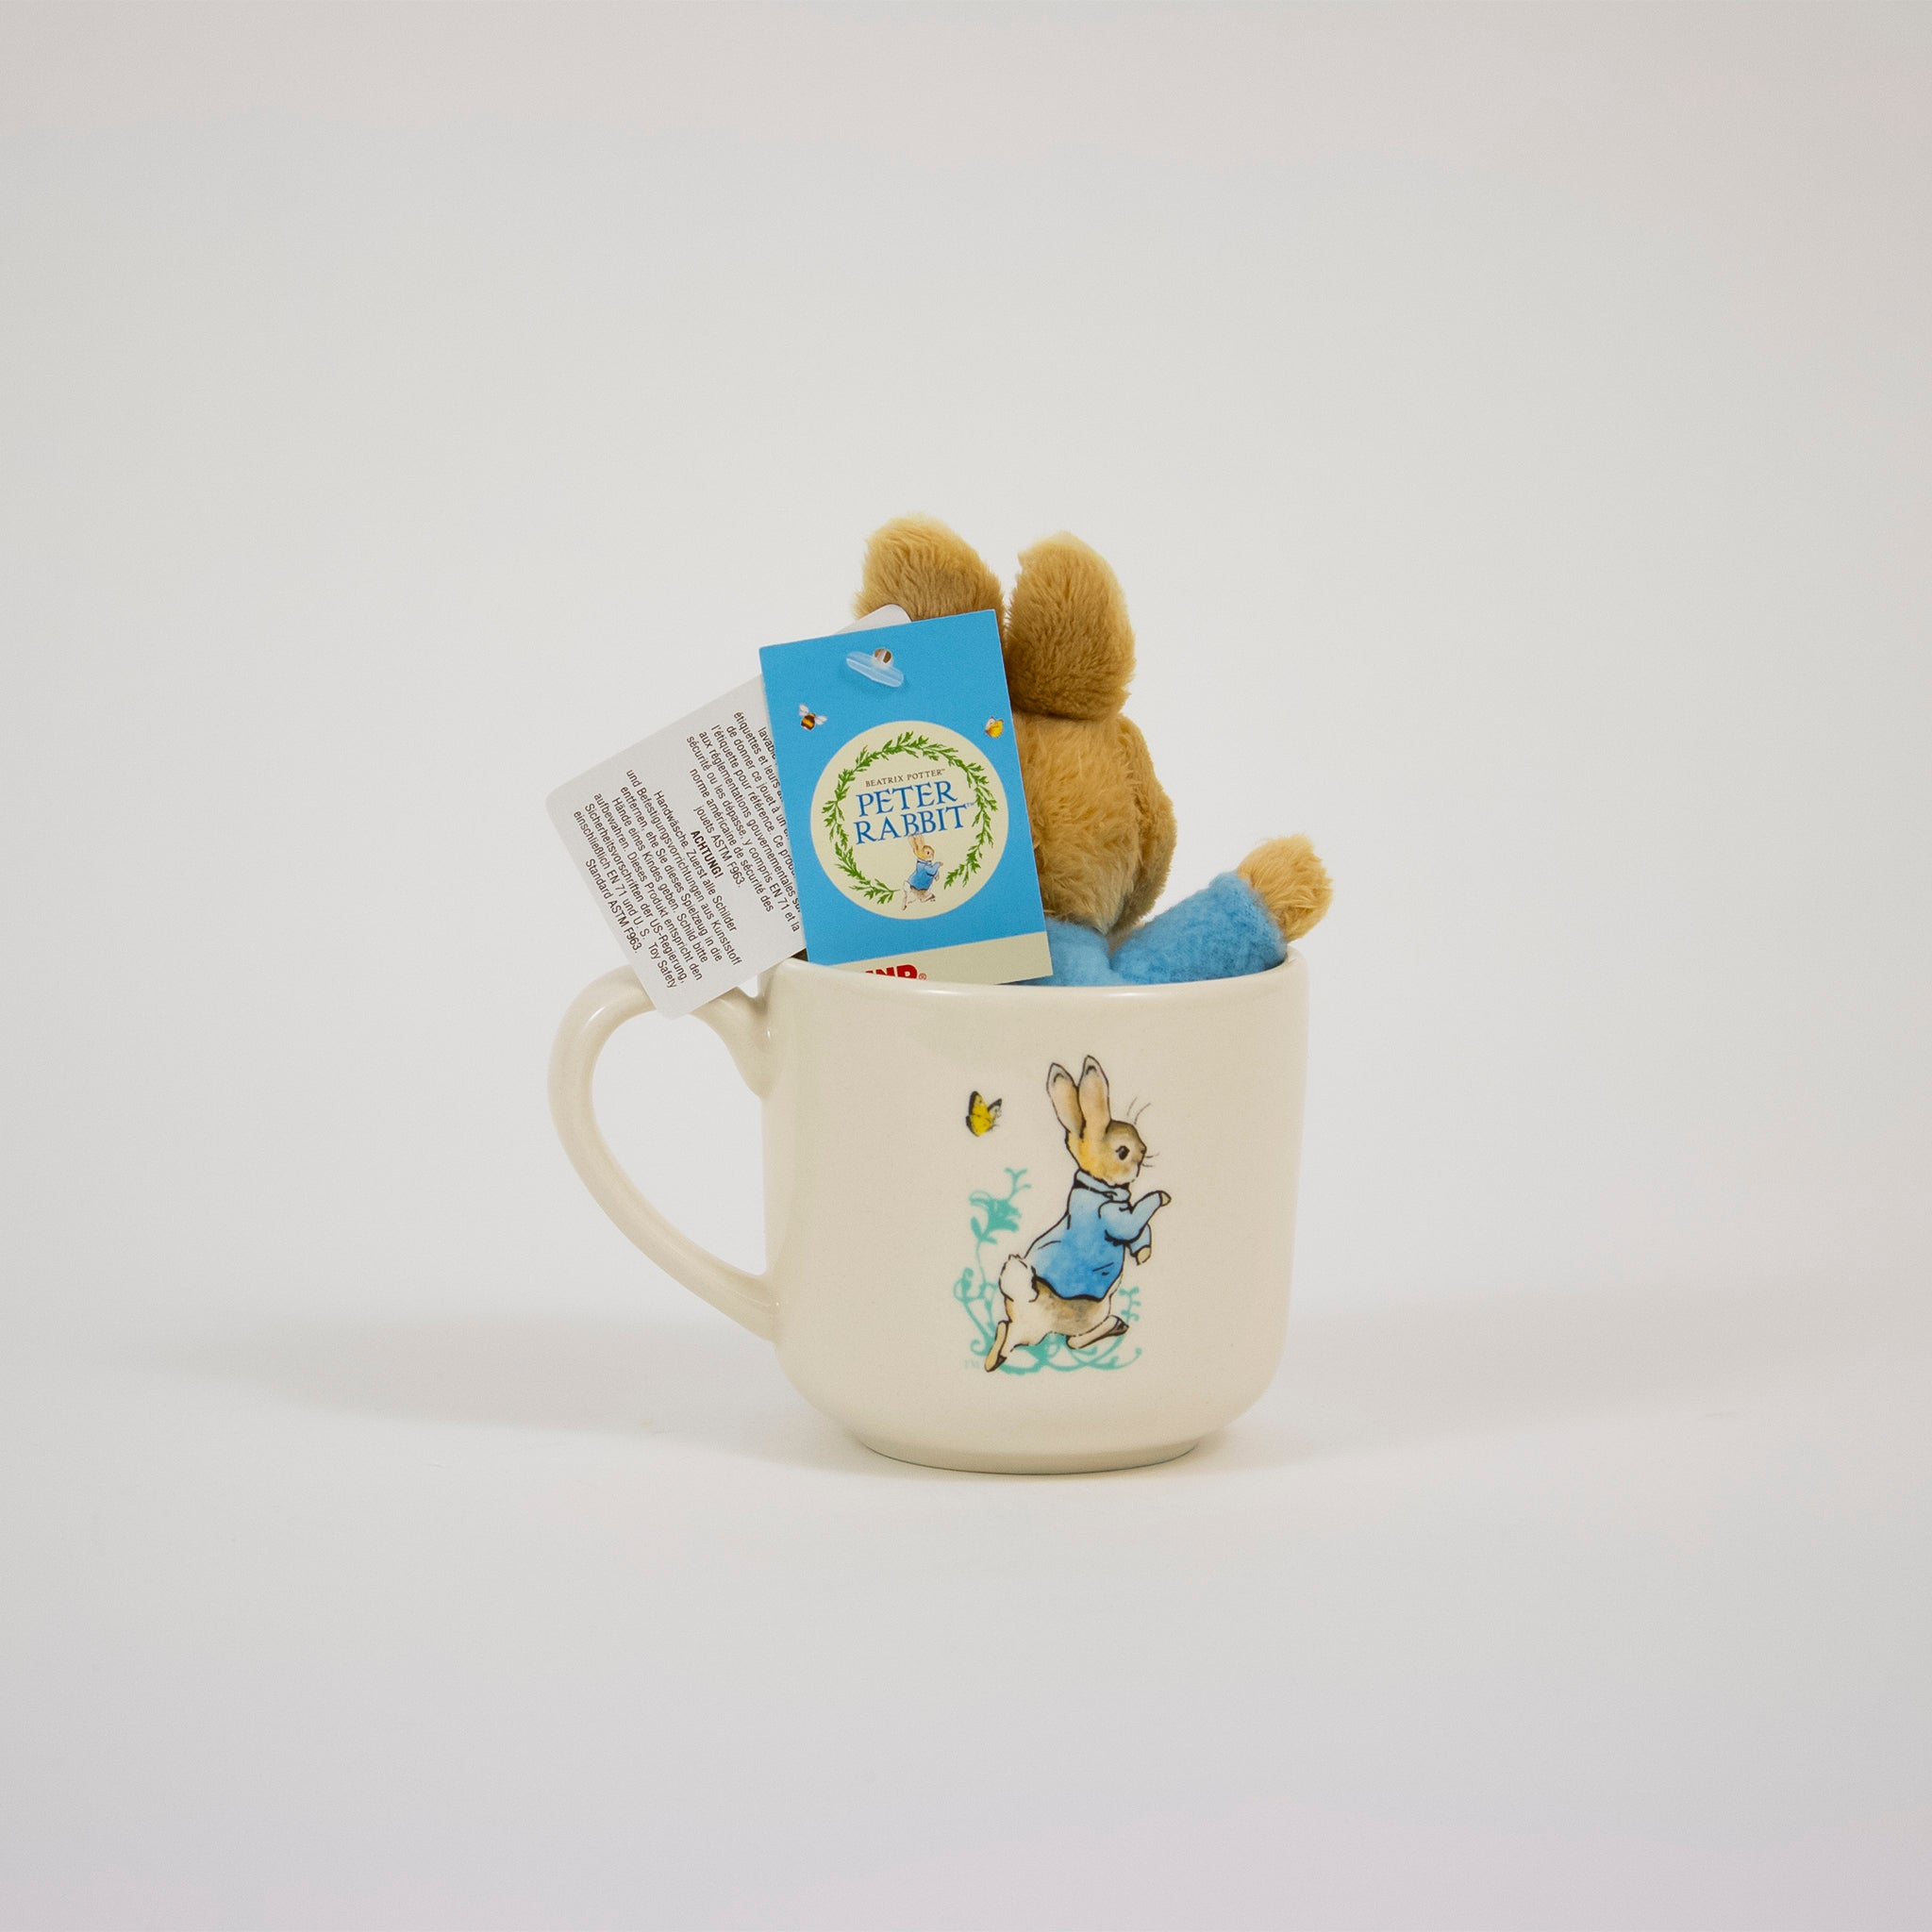 Peter Rabbit Mug & Toy Set